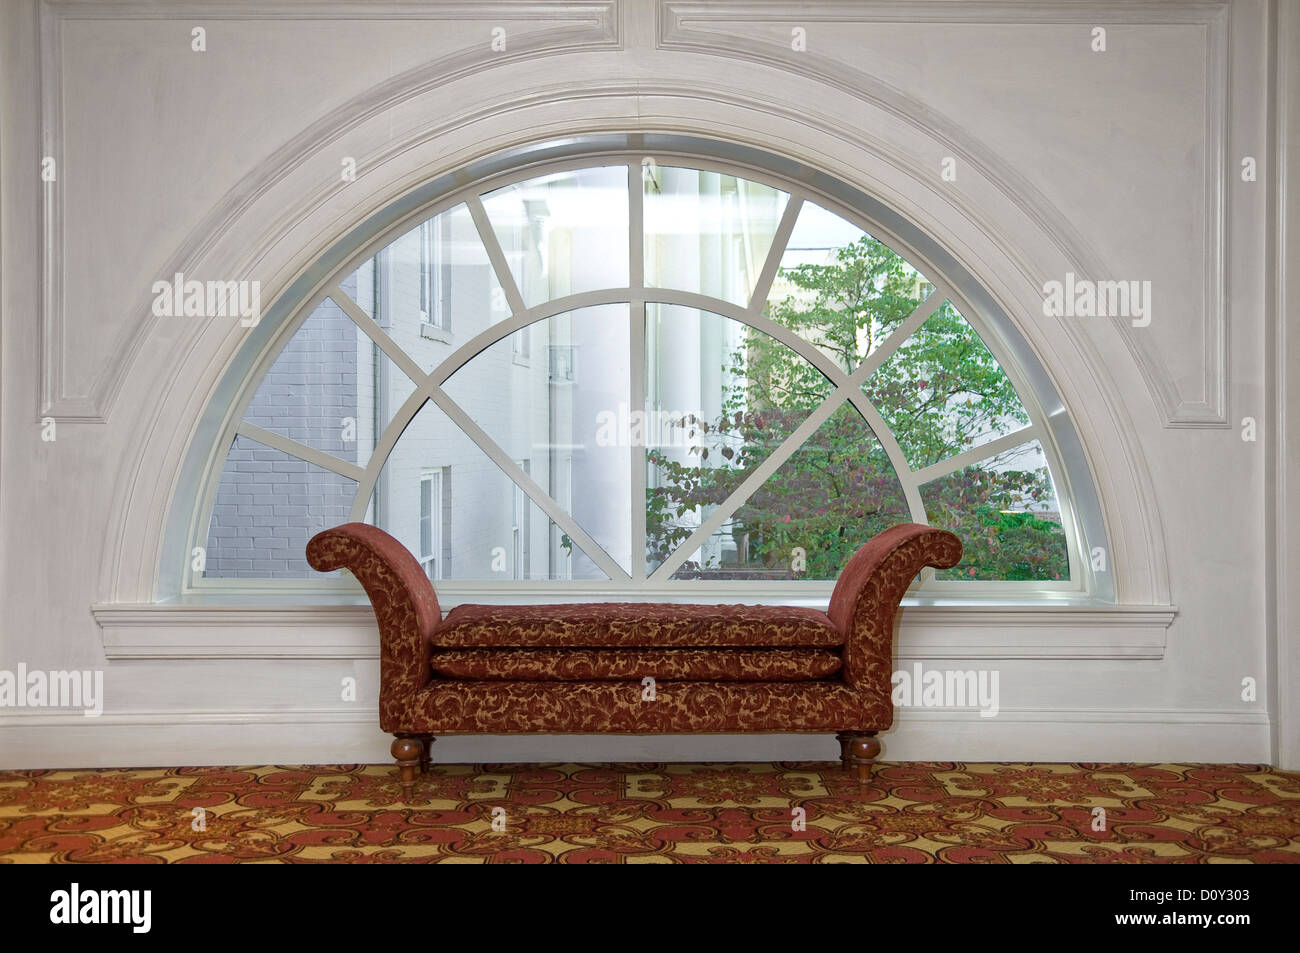 Daybed Chaise Lounge In Front Of Arch Window, Hotel Lobby - Stock Image